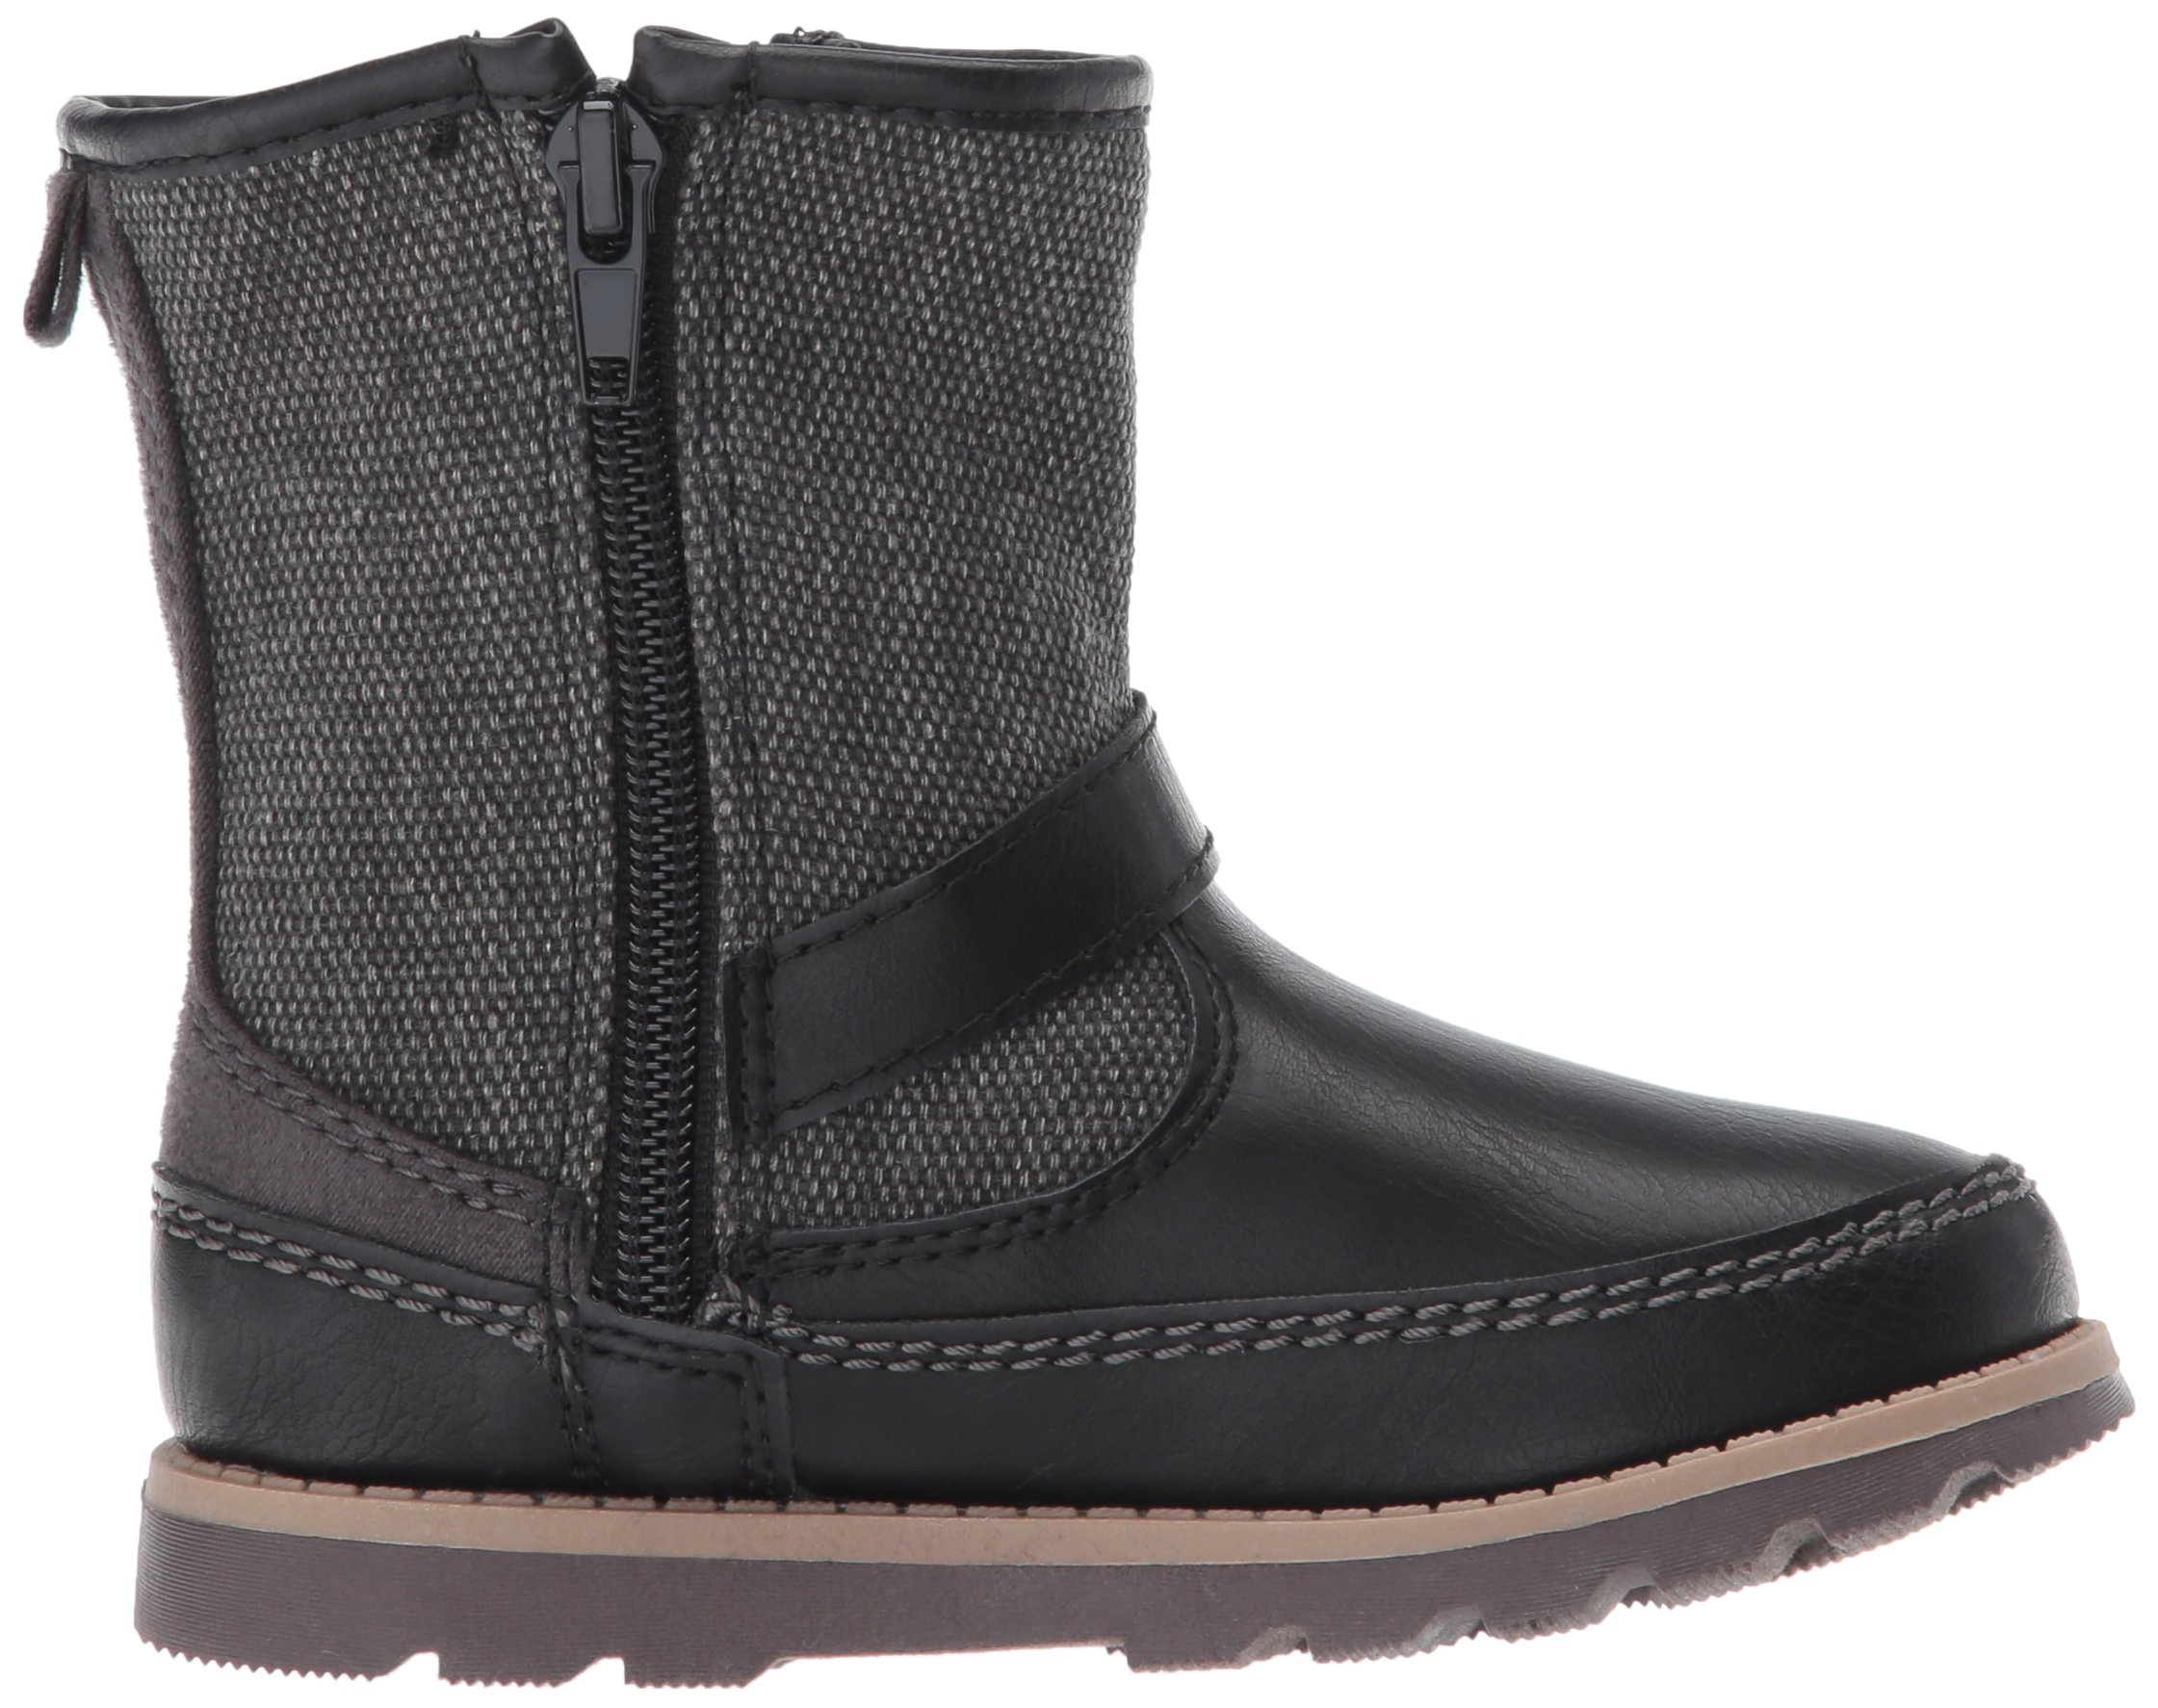 Carter's Boys' Galaway Fashion Boot, Black/Grey, 11 M US Little Kid by Carter's (Image #7)